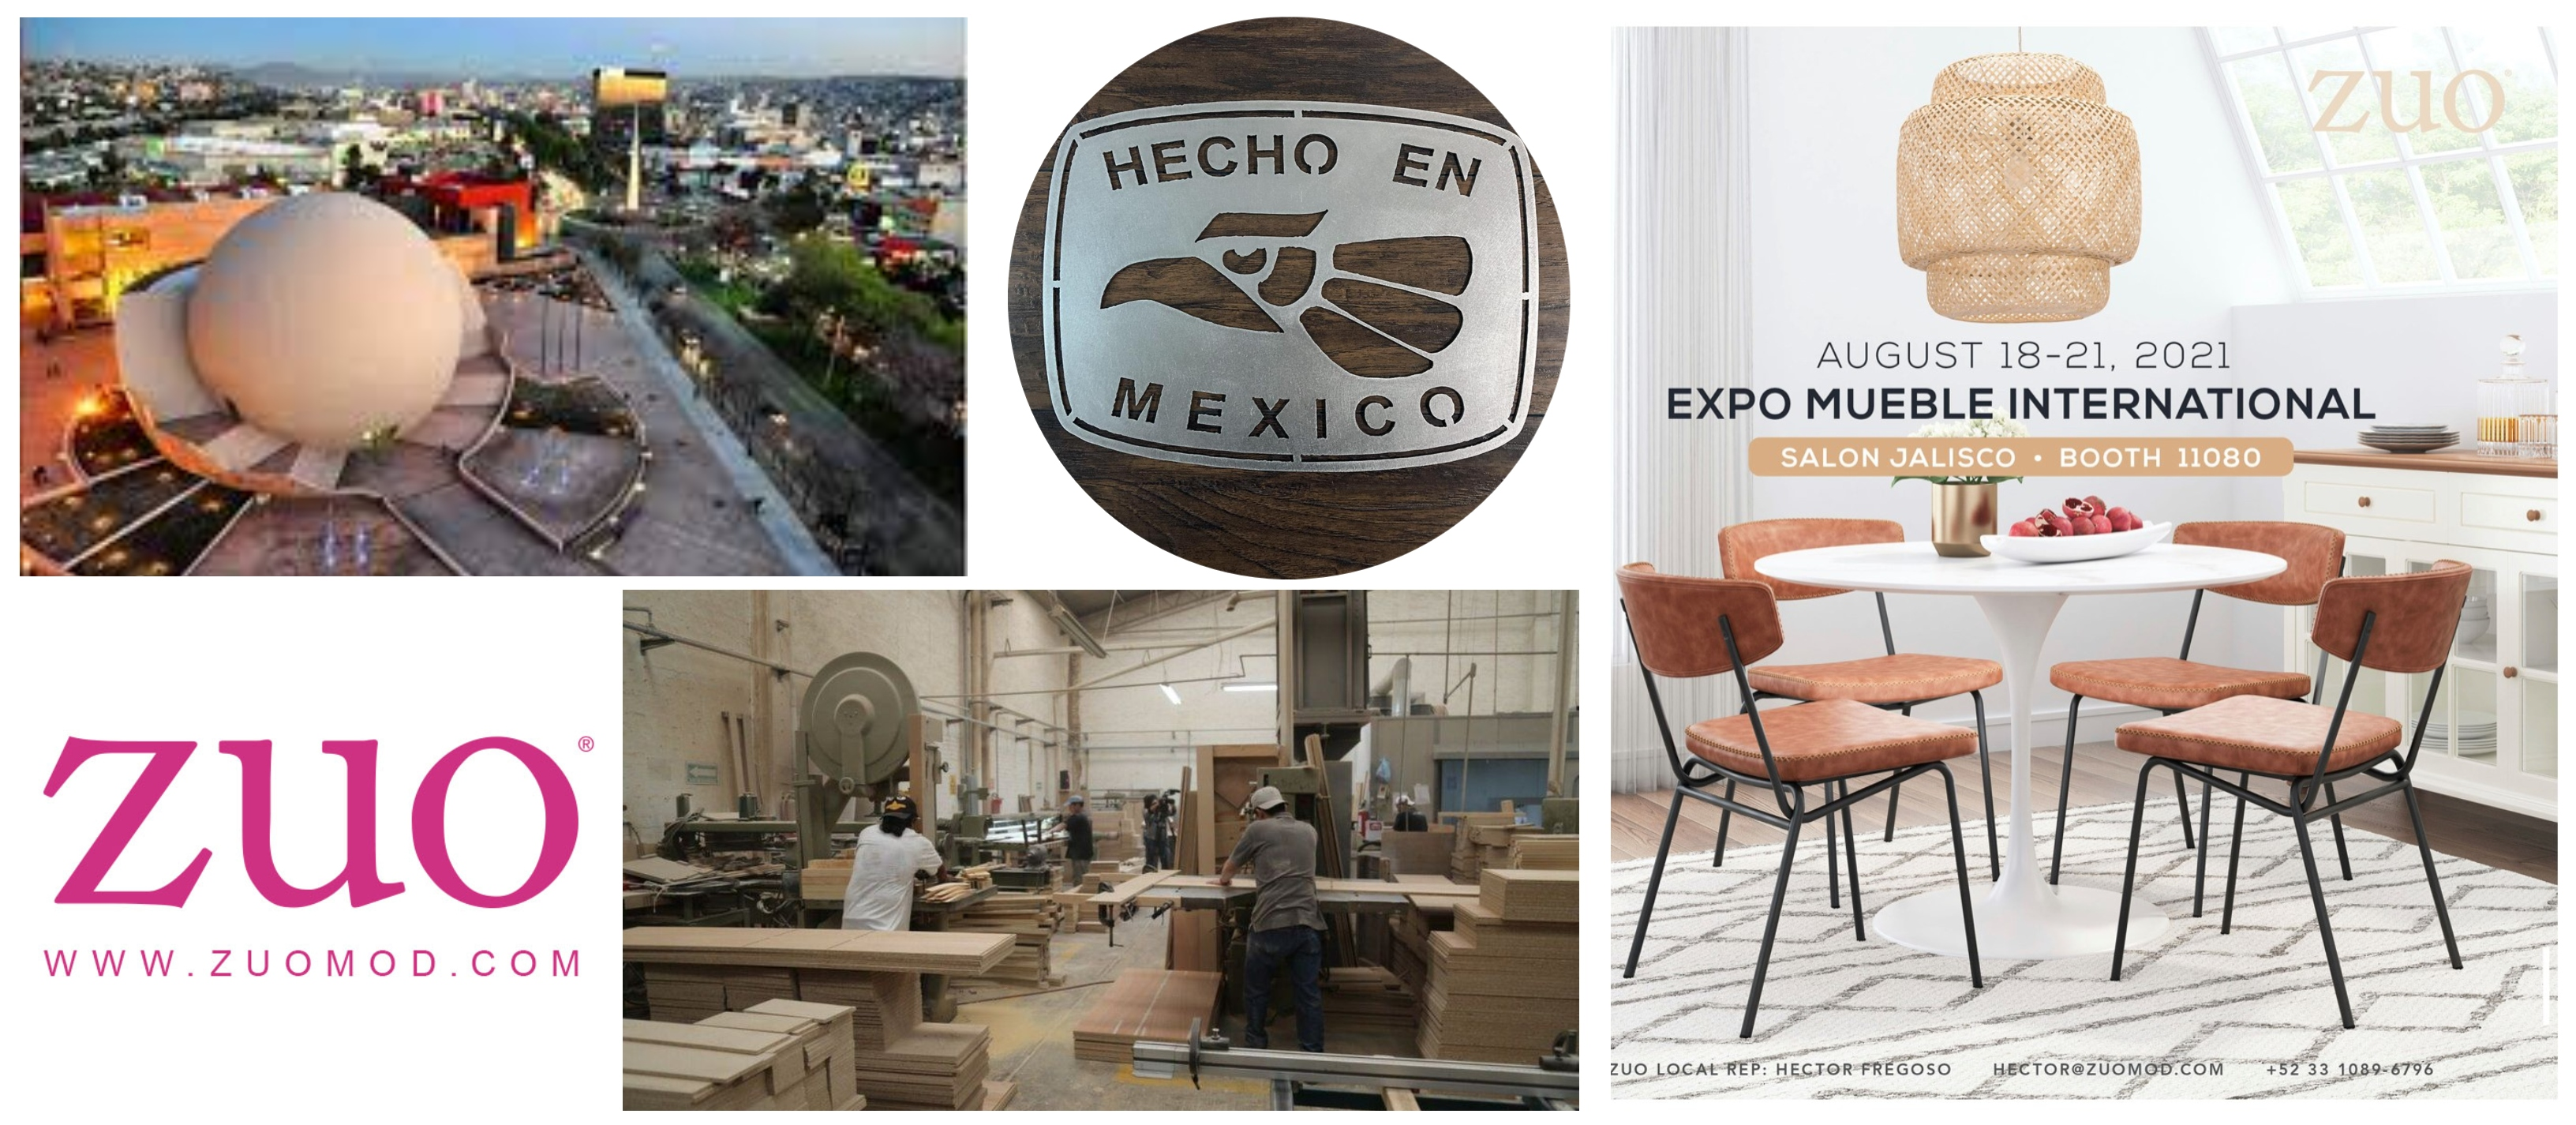 Furniture resources turn to Mexico as Asian supply chain woes mount